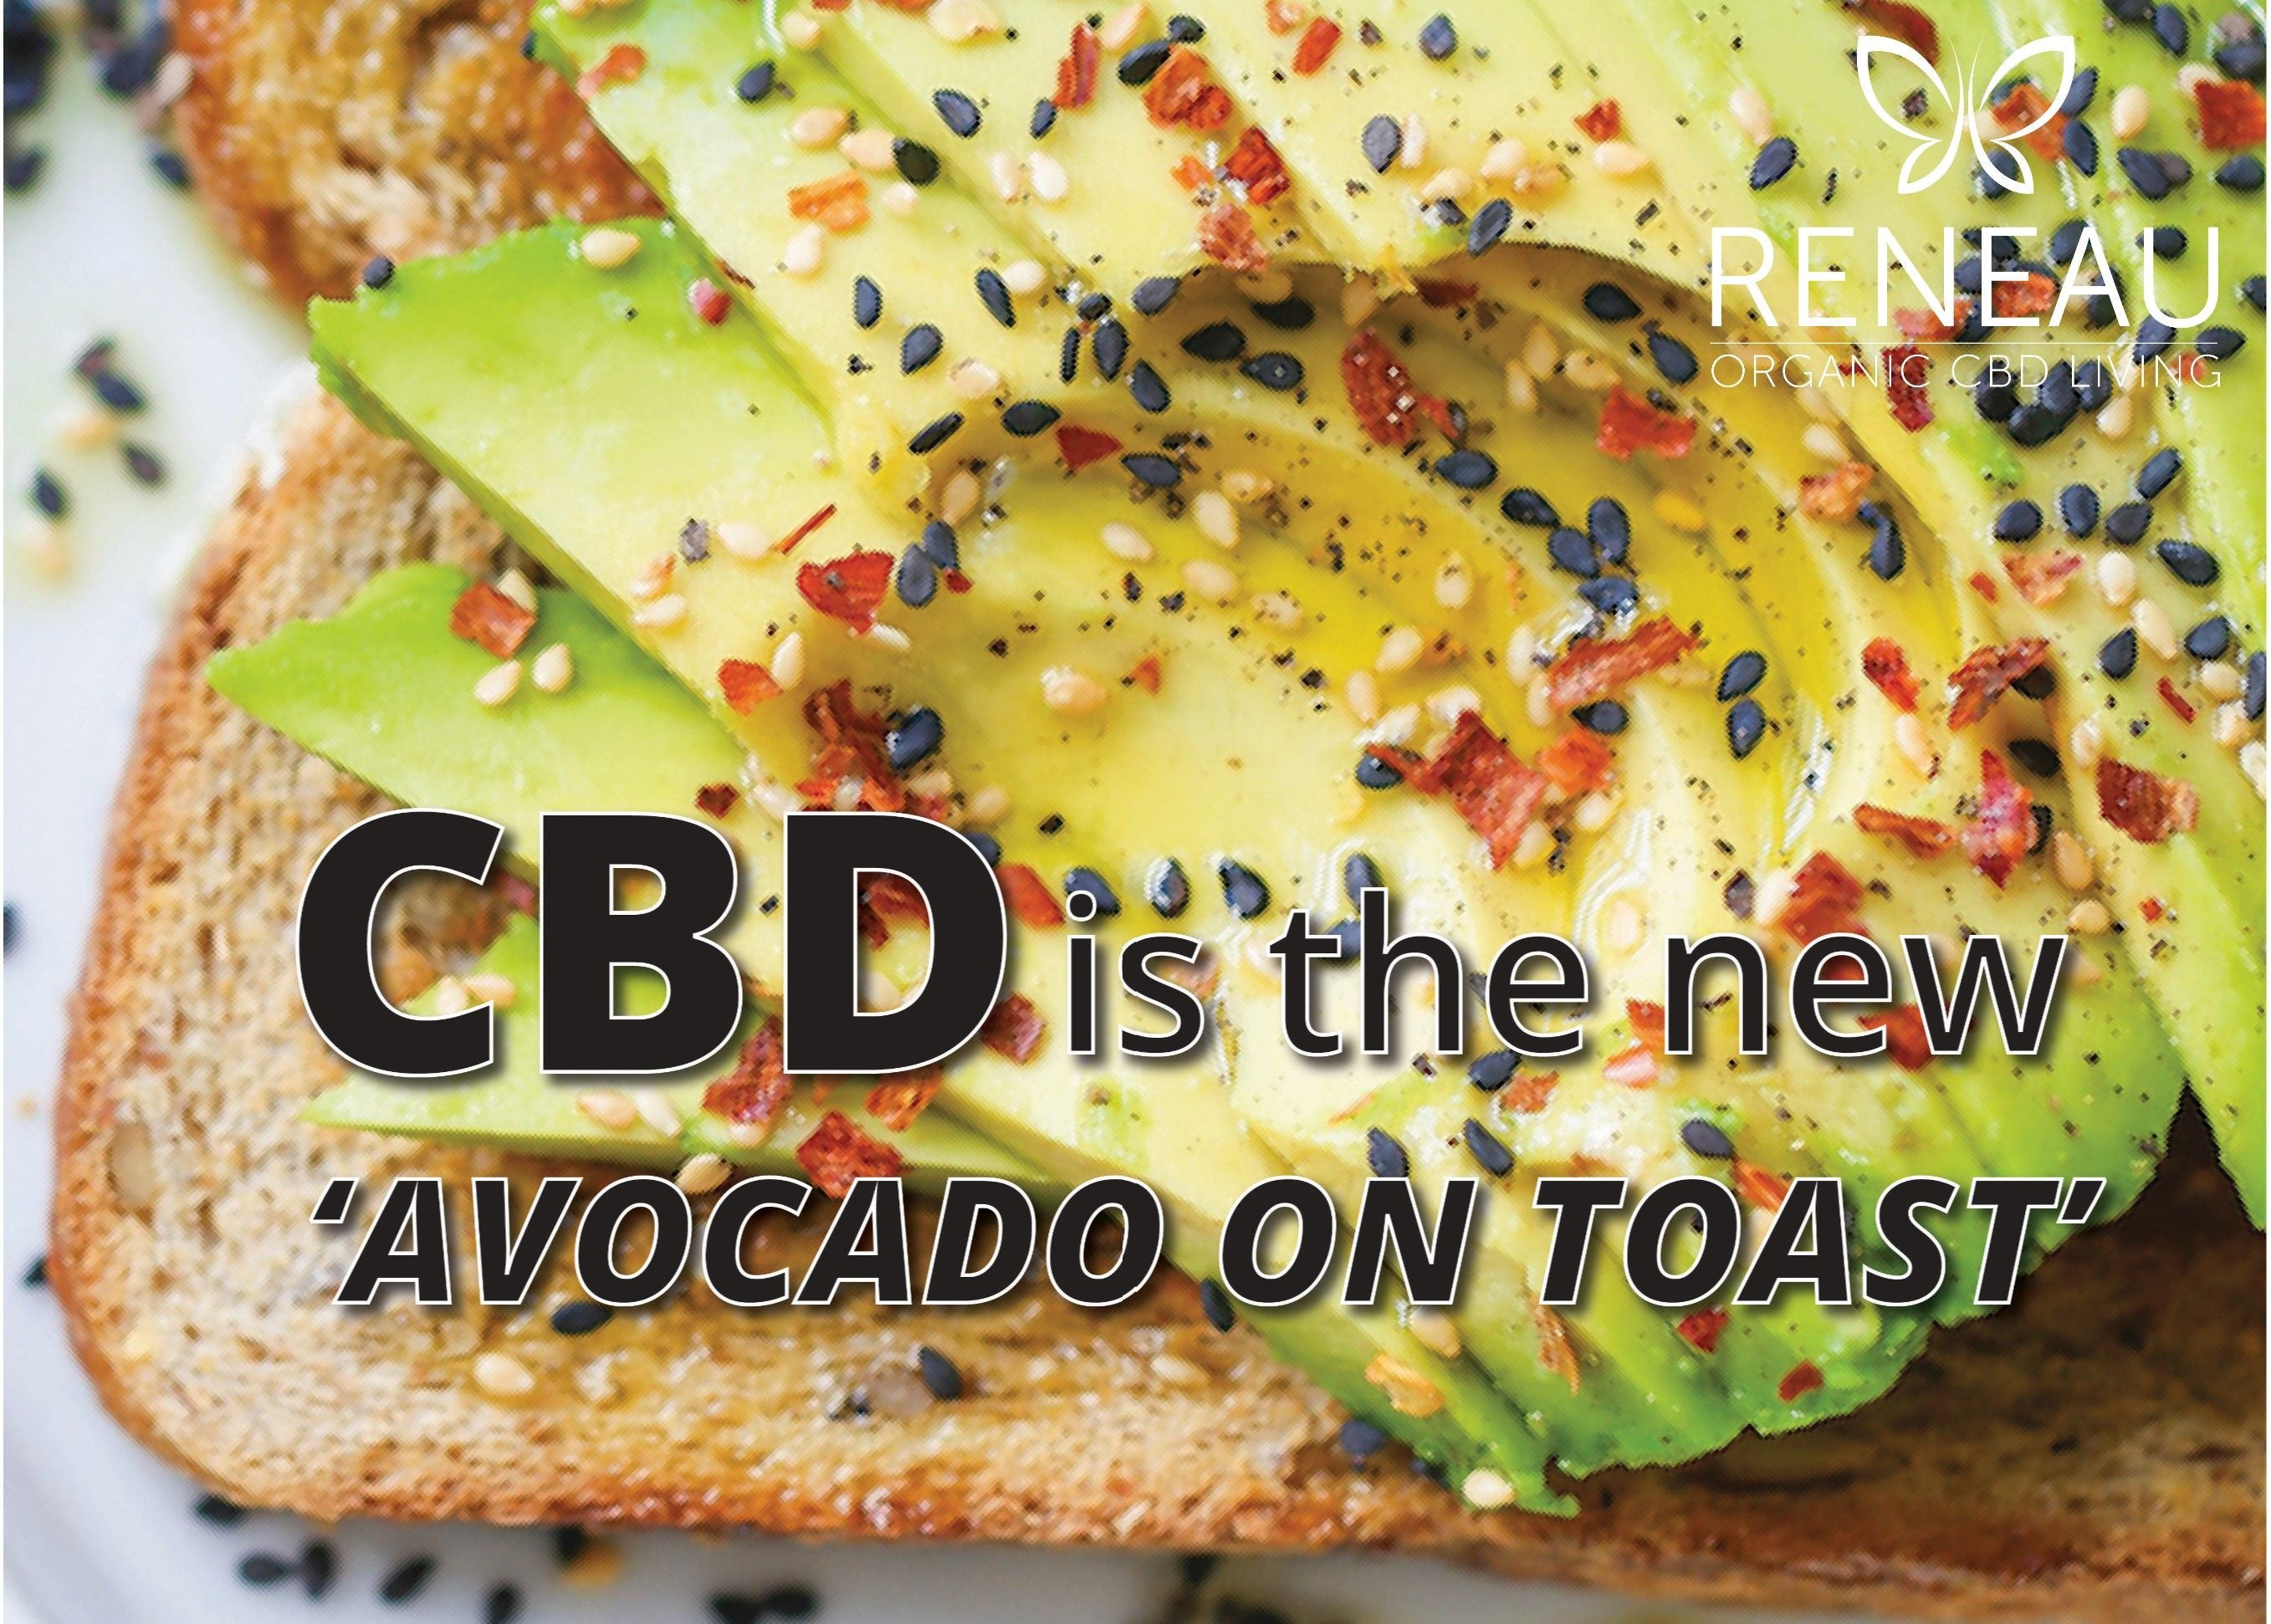 Close up of avocado on toast with title_CBD is the new avocado on toast | Natural Organic Pure Clean CBD Oils